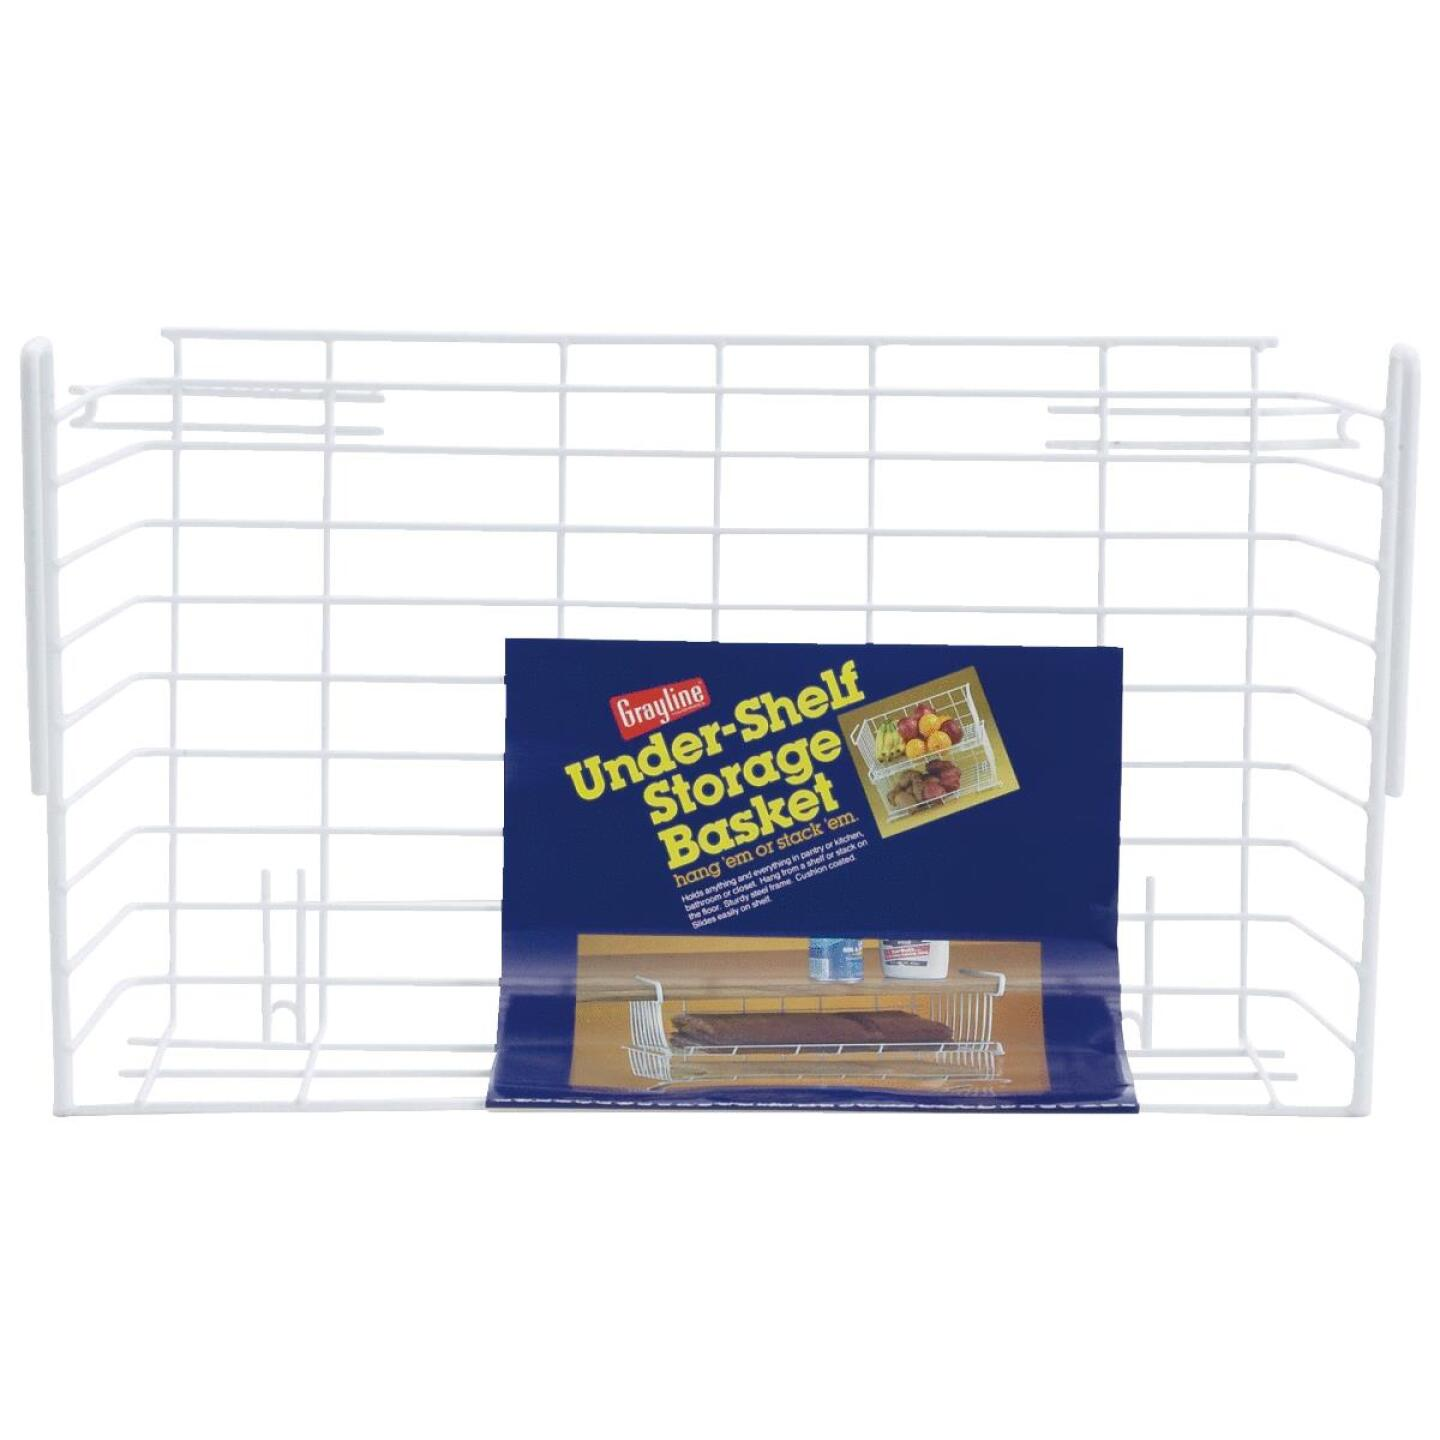 Grayline 10 In. W. x 6-1/4 In. H. x 17 In. L. Vinyl Coated Wire Undershelf Storage Basket, White Image 1